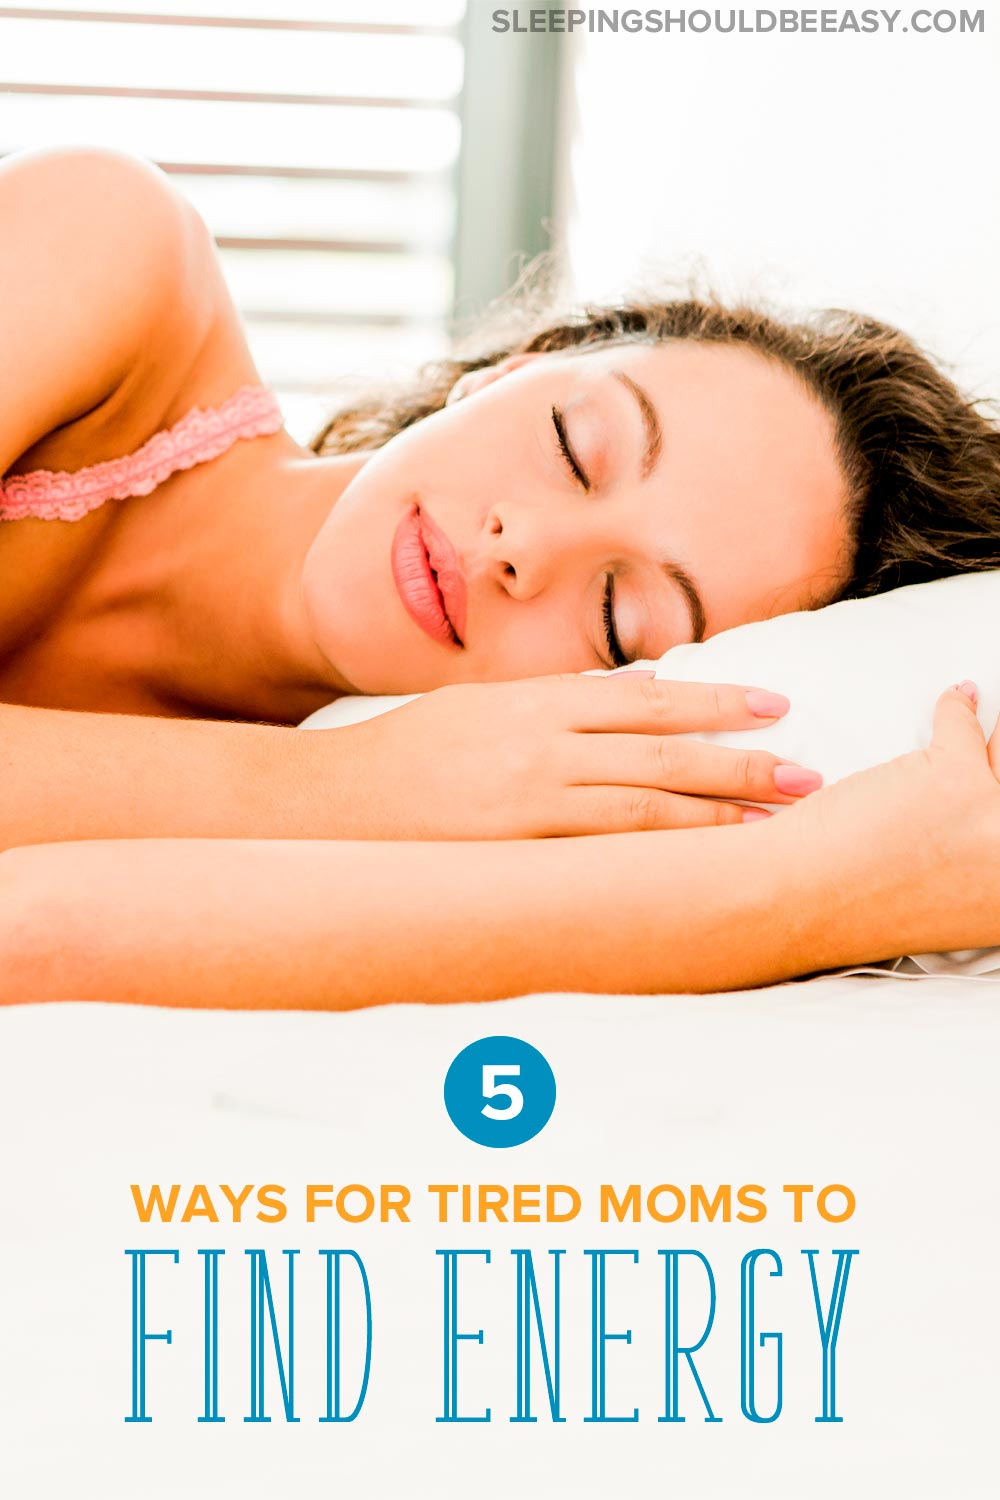 Finding focus and energy can be a challenge for the tired mama. Learn 5 tips to help you regain your energy, even when you've got kids.